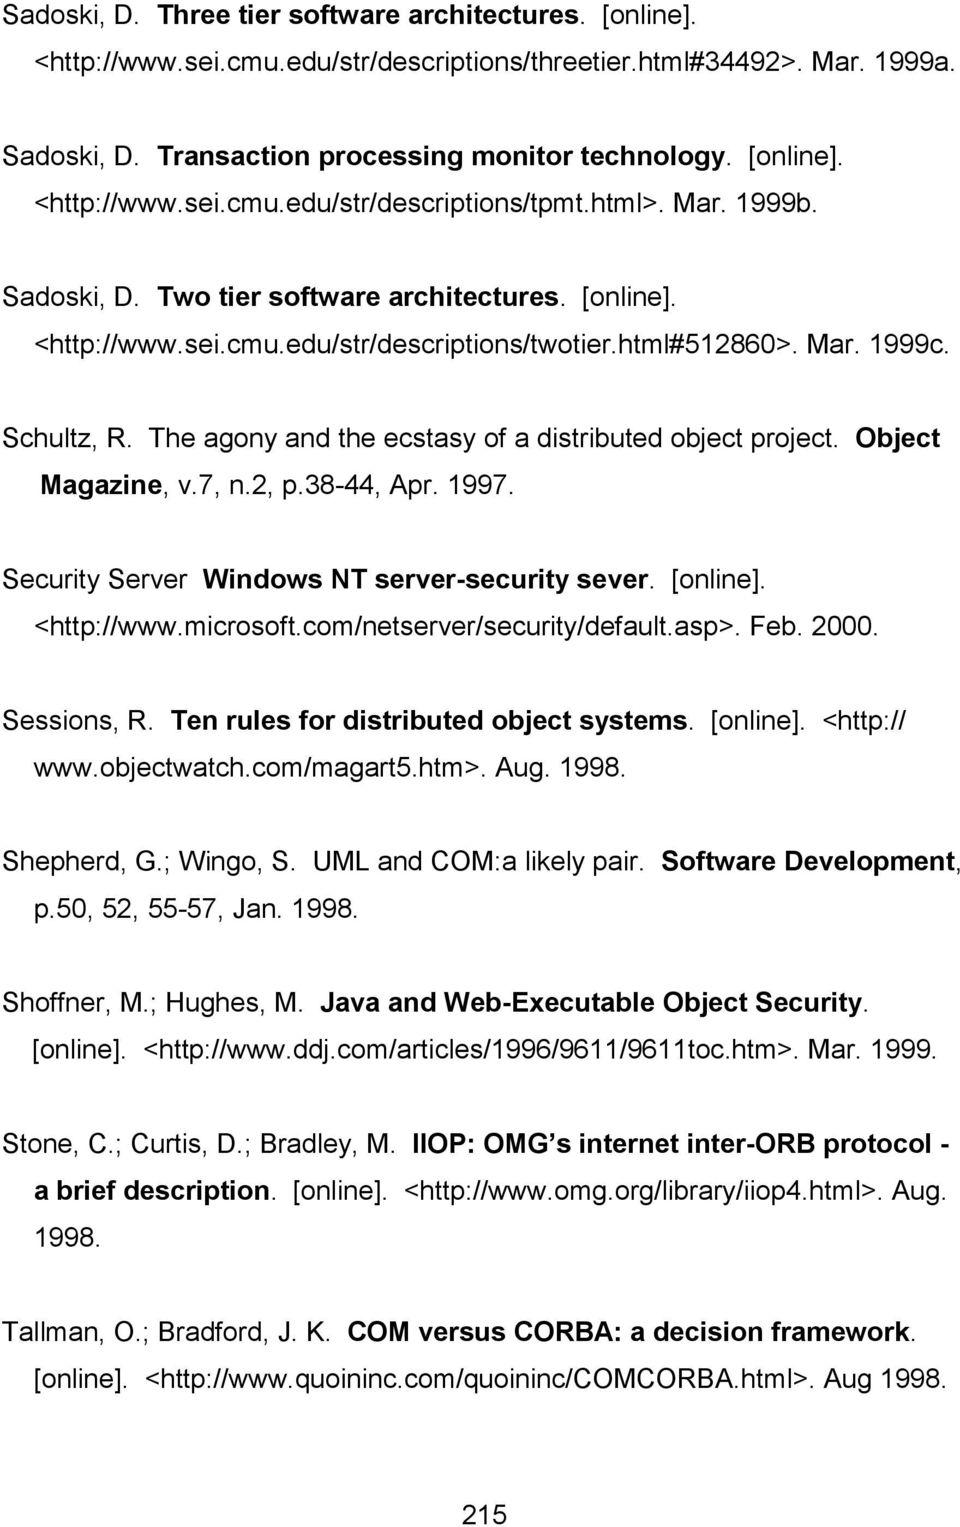 The agony and the ecstasy of a distributed object project. Object Magazine, v.7, n.2, p.38-44, Apr. 1997. Security Server Windows NT server-security sever. [online]. <http://www.microsoft.